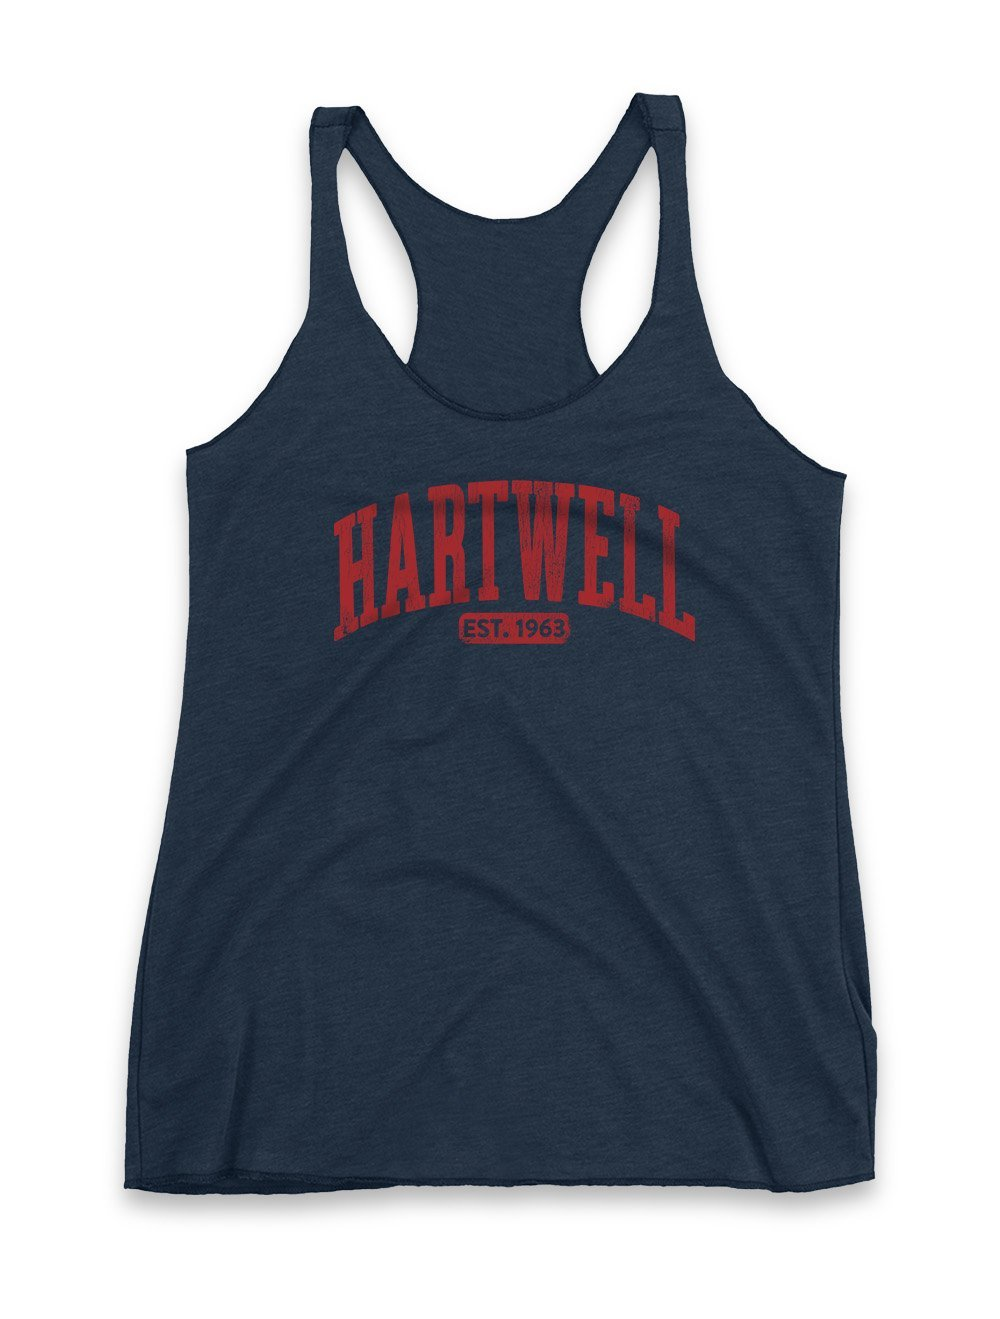 Lake Hartwell Women's Tank Top